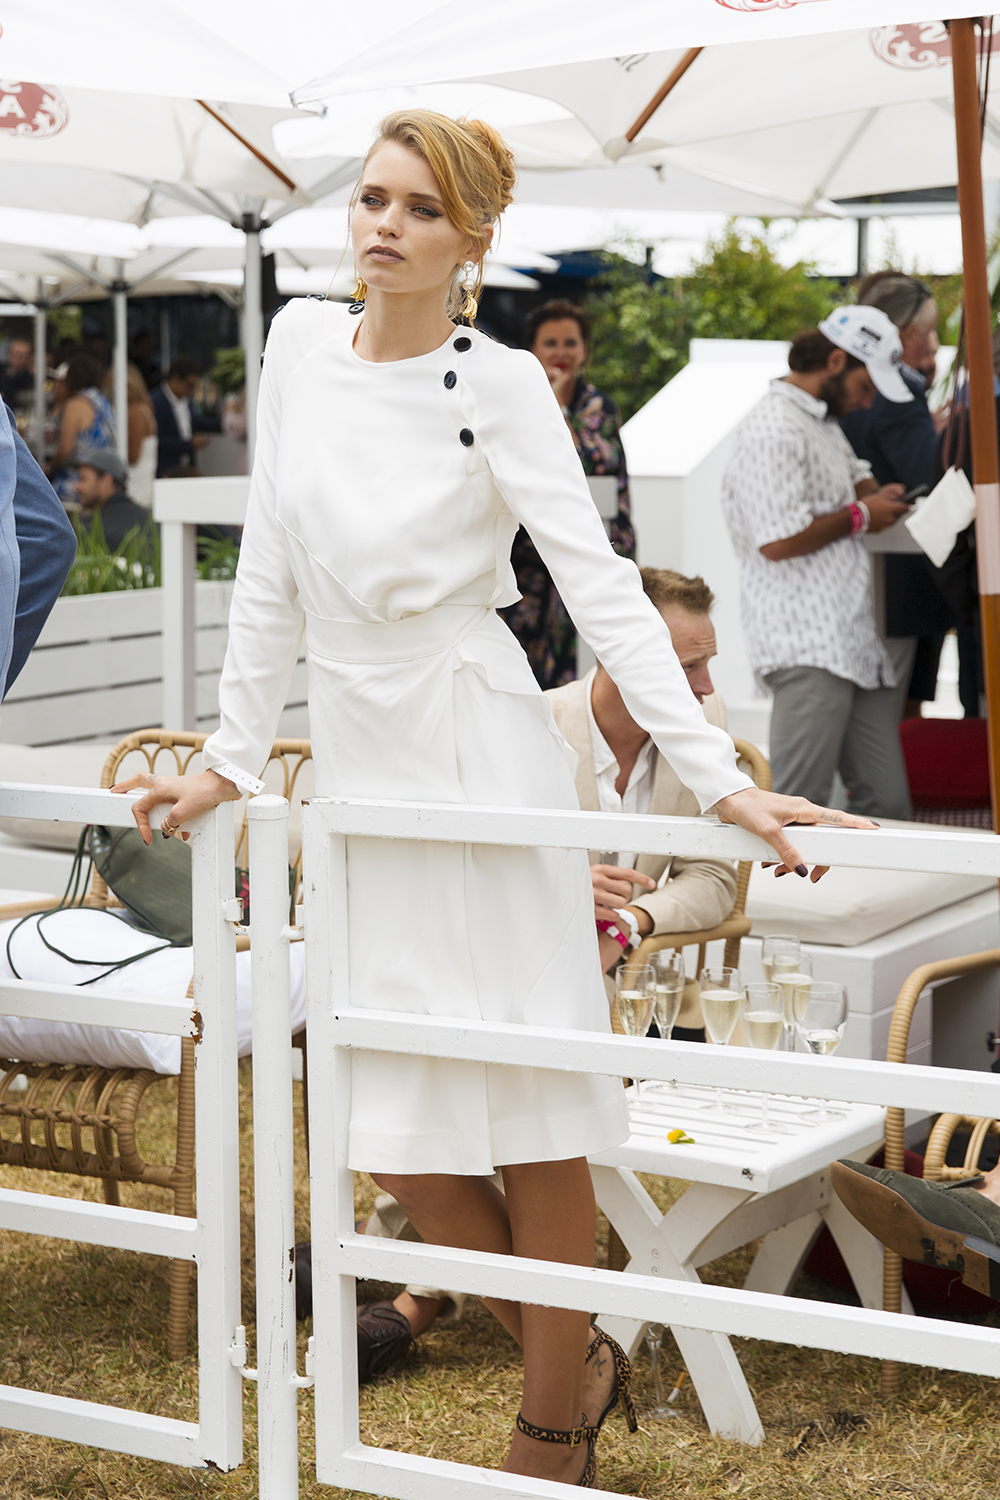 Abbey-Lee-Kershaw-Portsea-Polo-2018-Stylesnooperdan.jpg